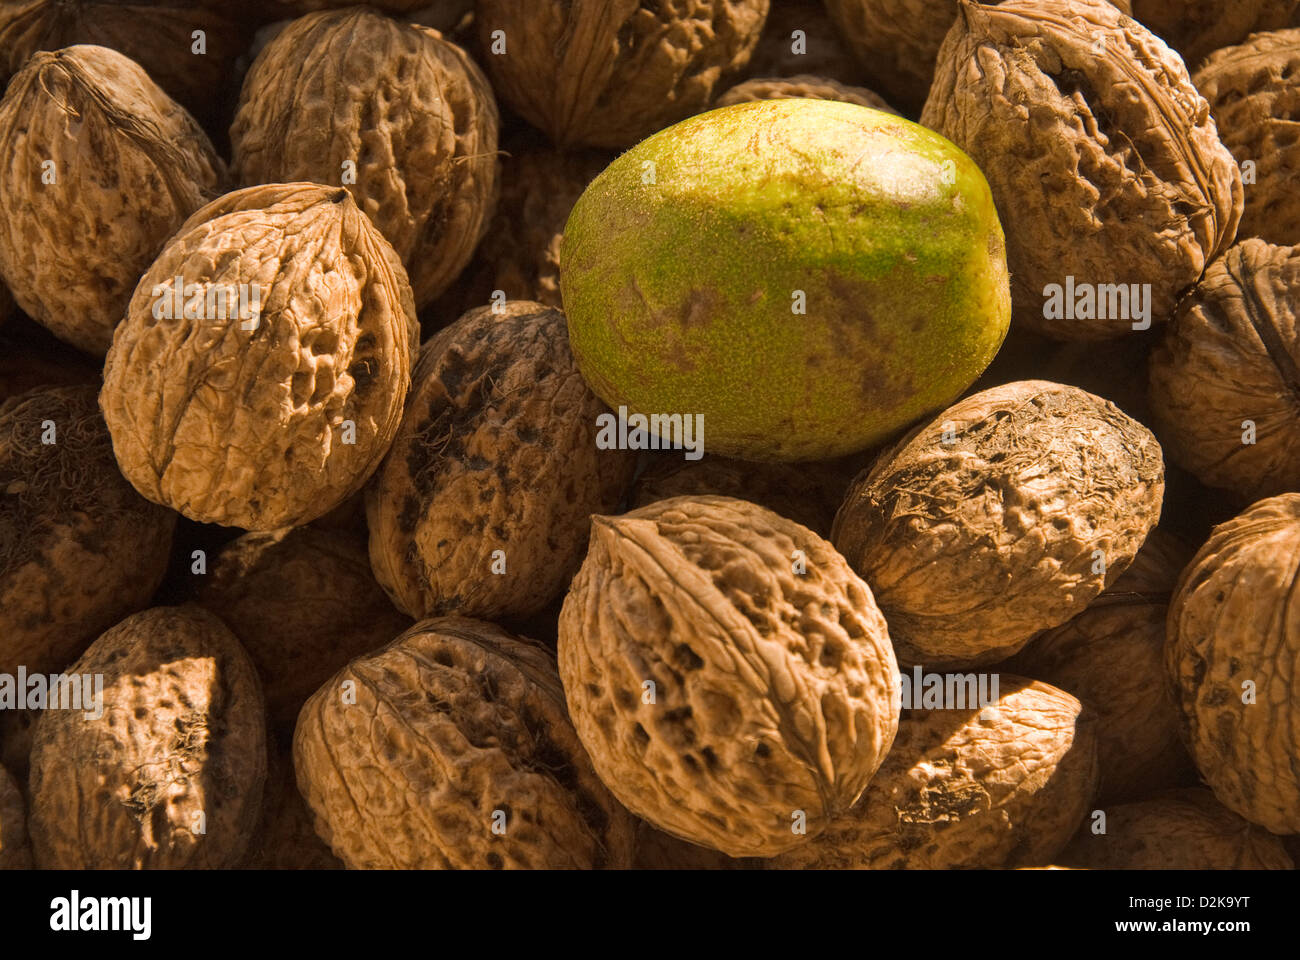 Close-up of harvested walnuts - Stock Image